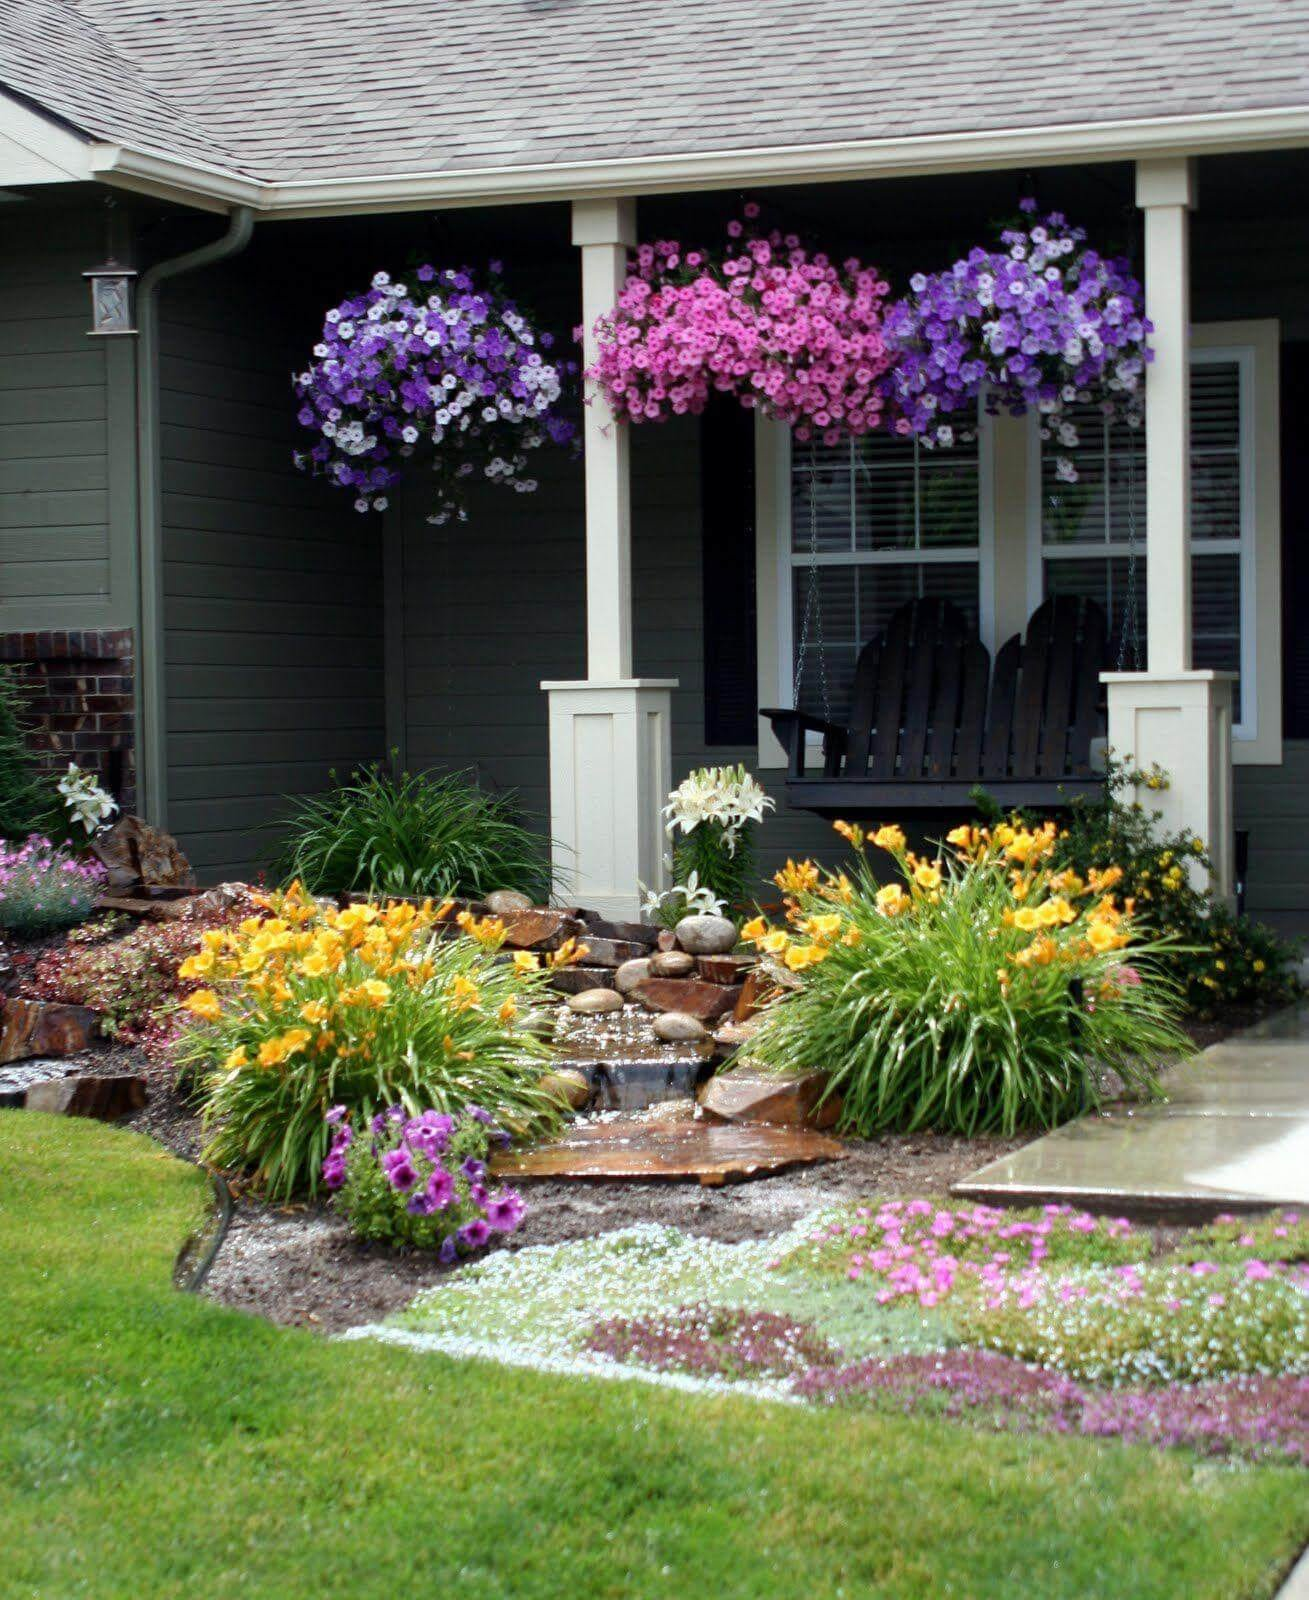 Simphome.com front yard landscaping ideas and garden designs for 2020 2021 regarding gardening ideas for front yard